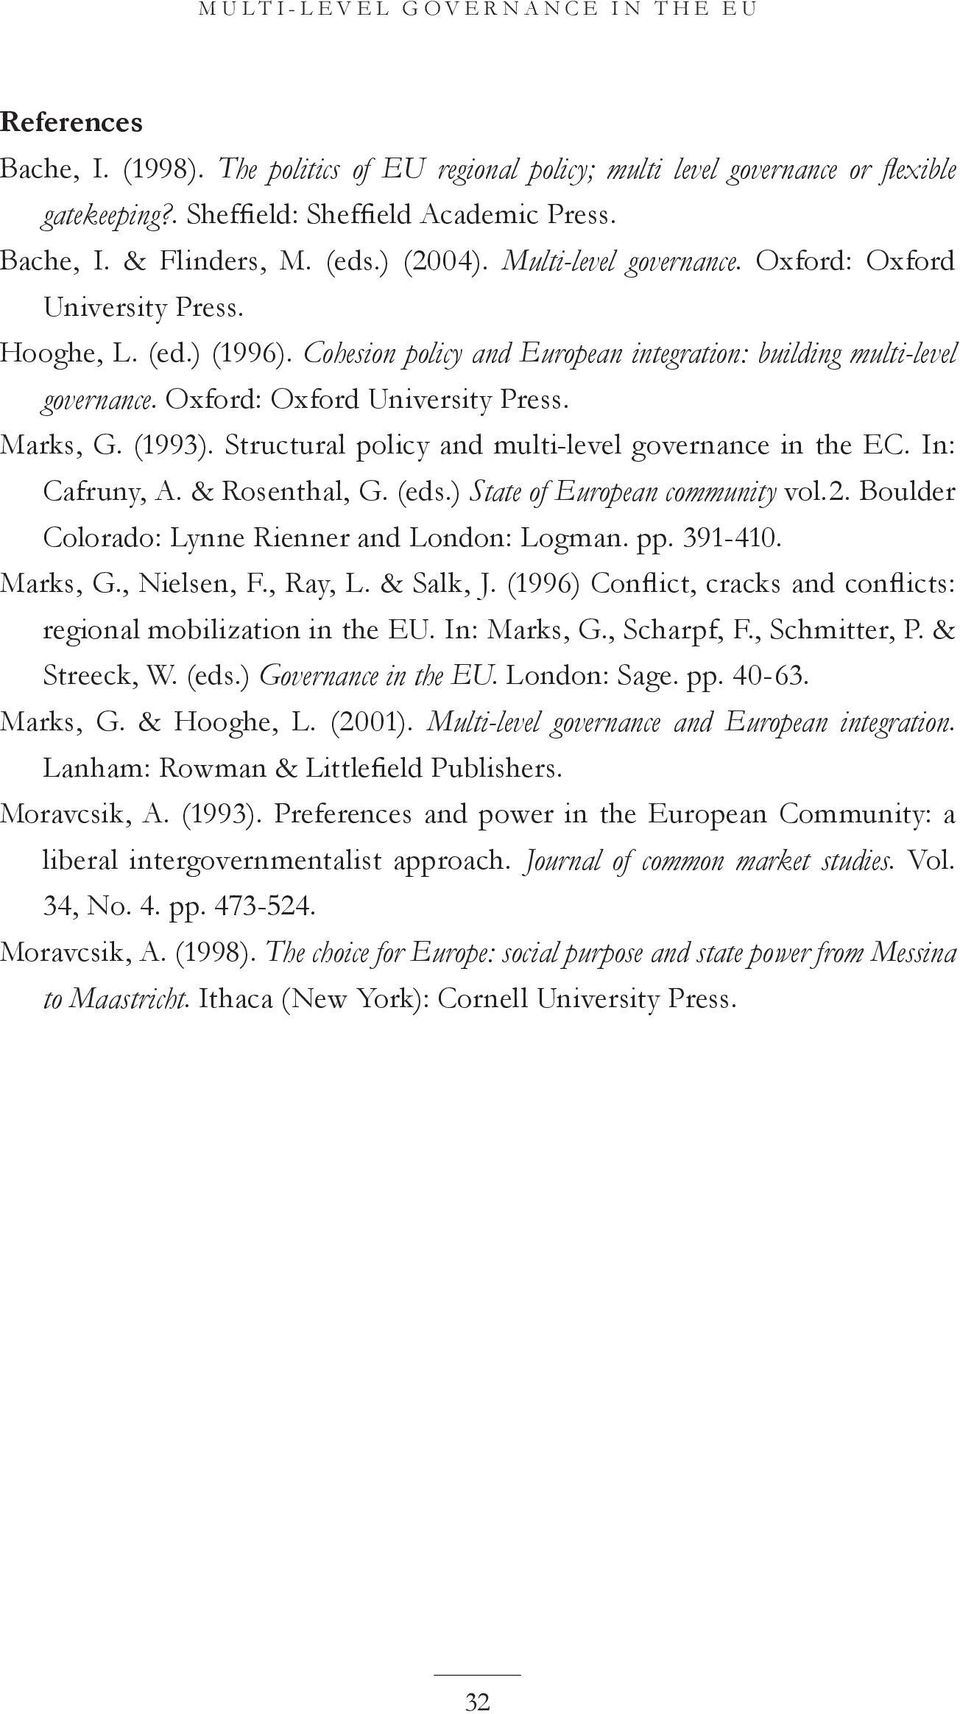 (1993). Structural policy and multi-level governance in the EC. In: Cafruny, A. & Rosenthal, G. (eds.) State of European community vol.2. Boulder Colorado: Lynne Rienner and London: Logman. pp.